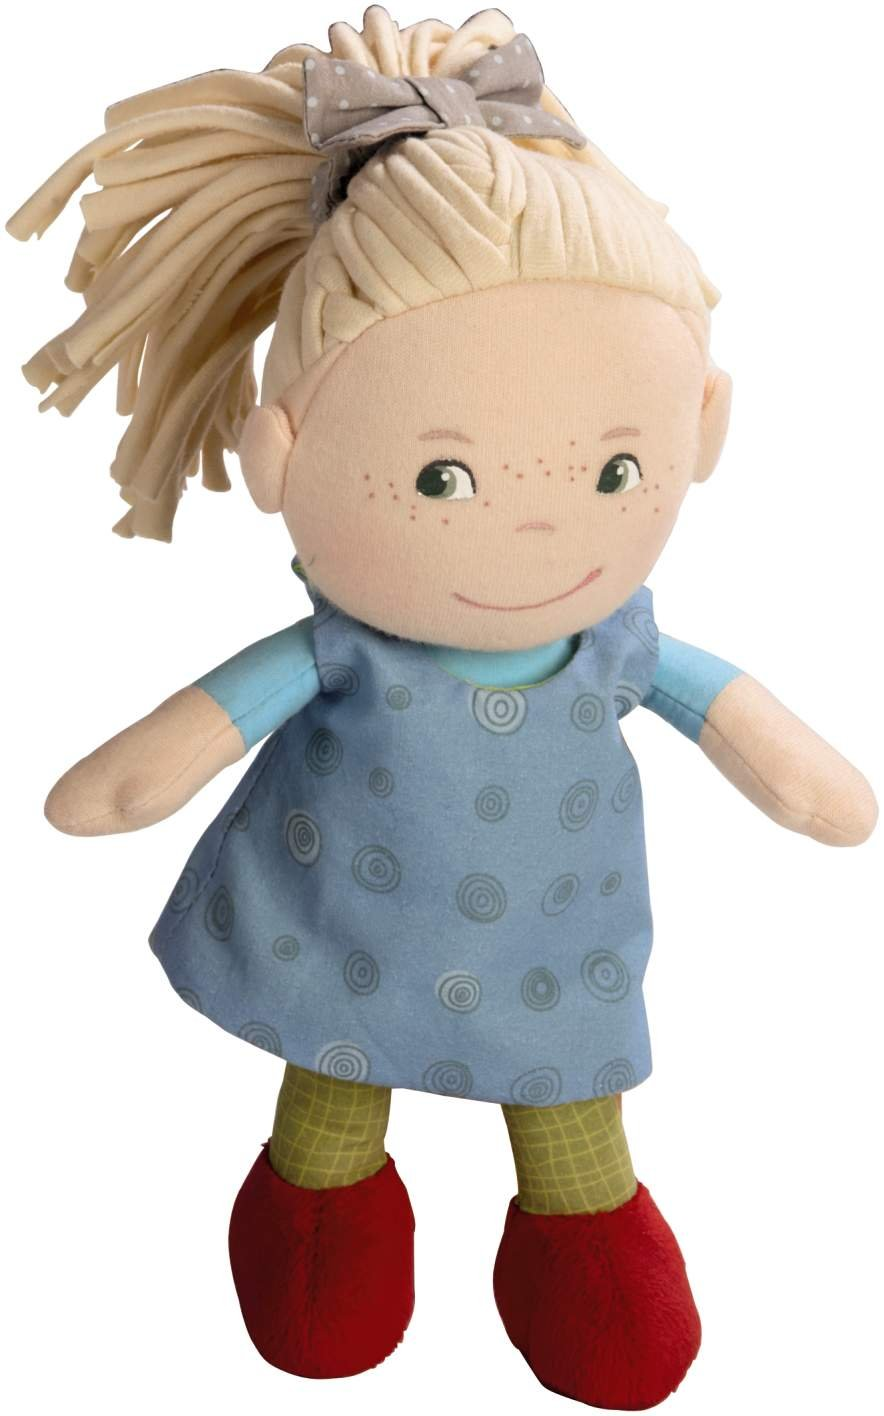 First Baby Doll with Blonde Pony Tail for Ages 6 Months HABA Soft Doll Mirle 8 5738